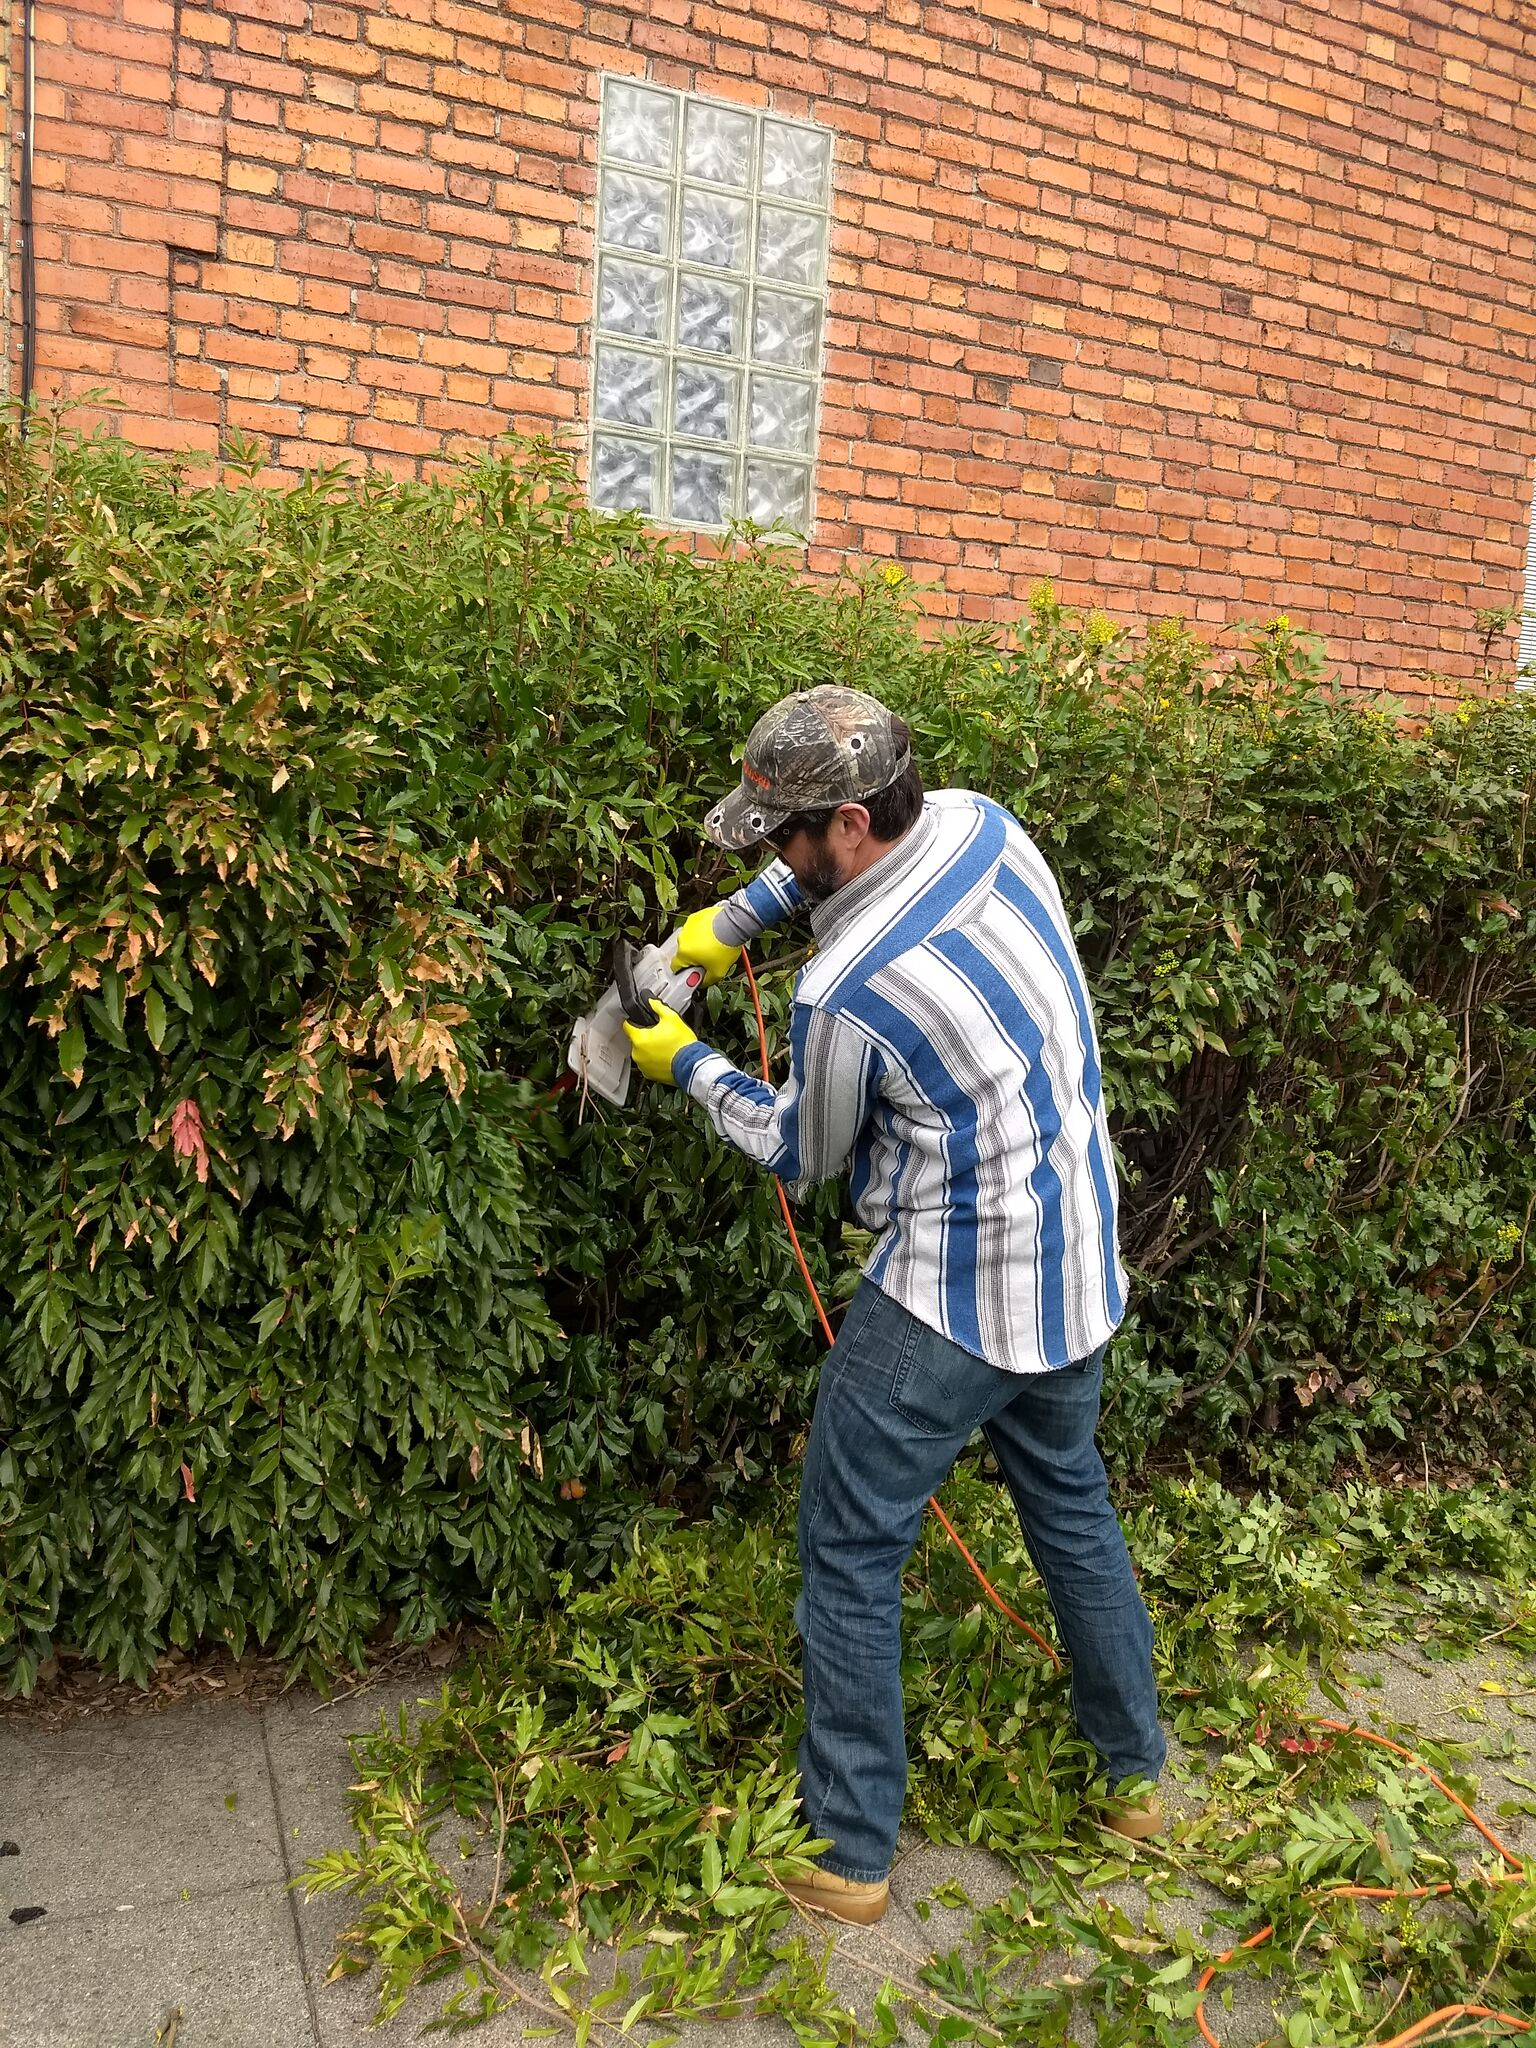 Man in baseball cap wears gloves and sunglasses while he uses a power hedge trimmer